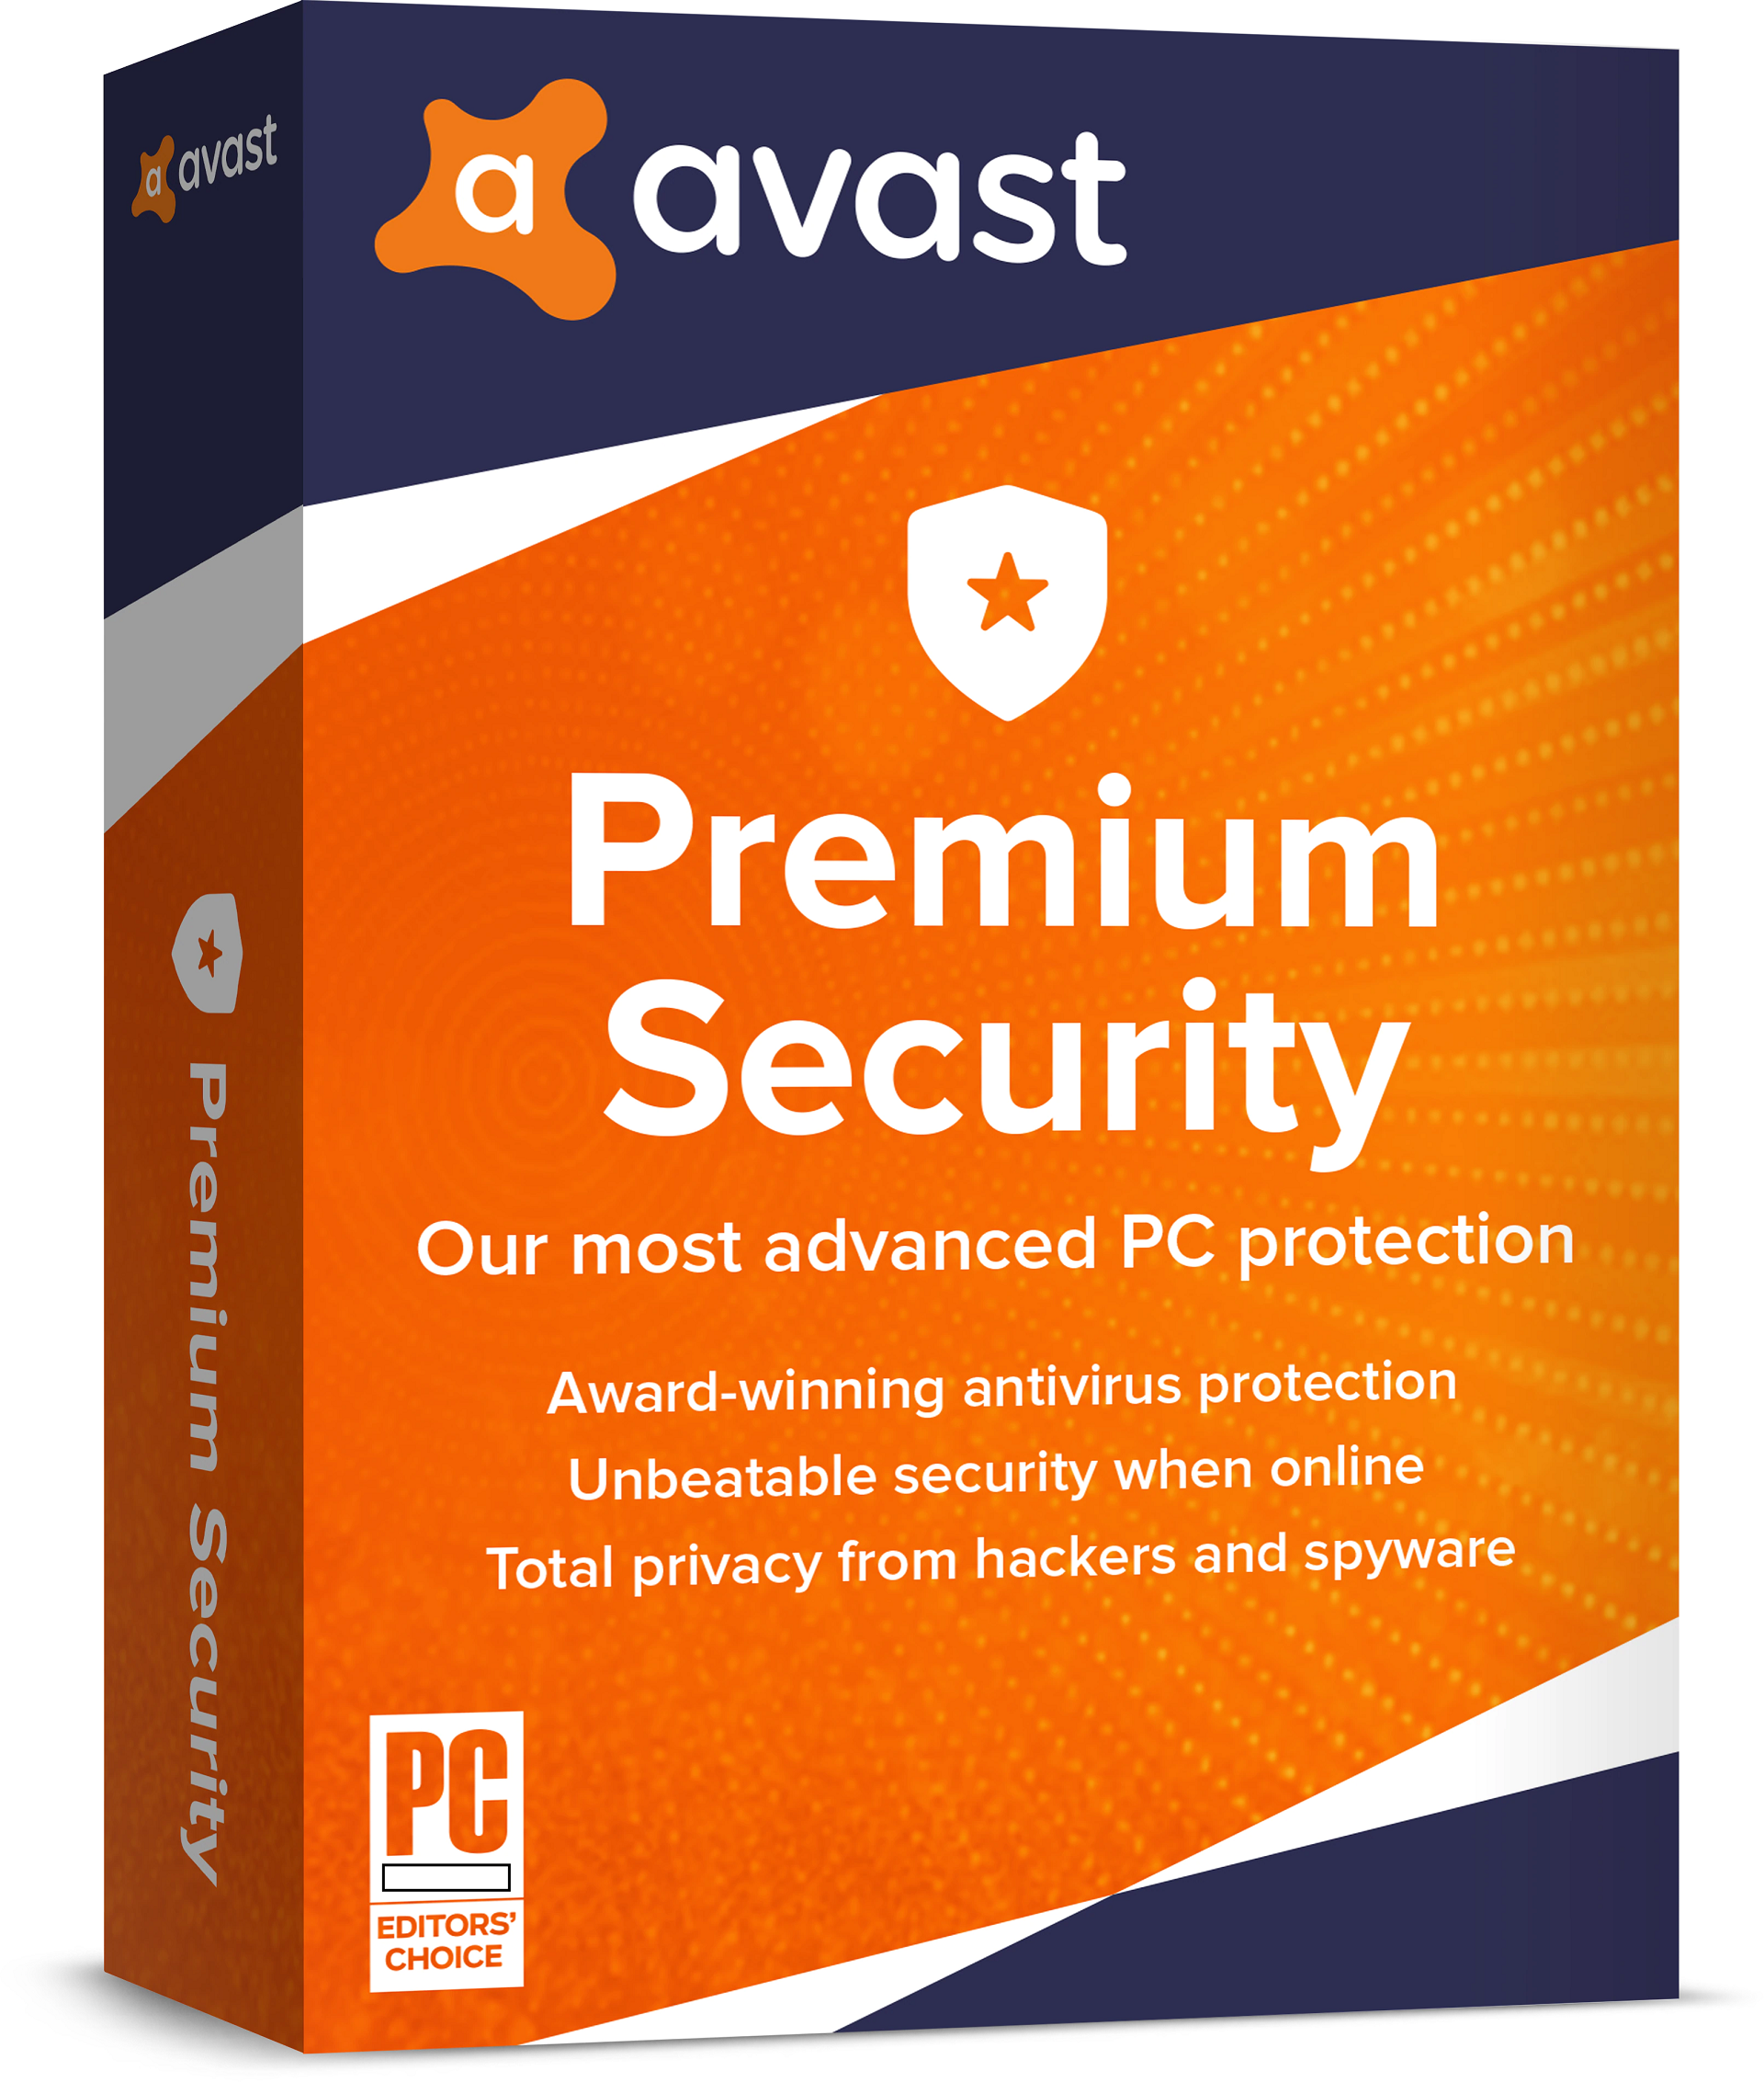 Avast Premium Security 2020 Fast Shipping 2 Years Avast Cleanup